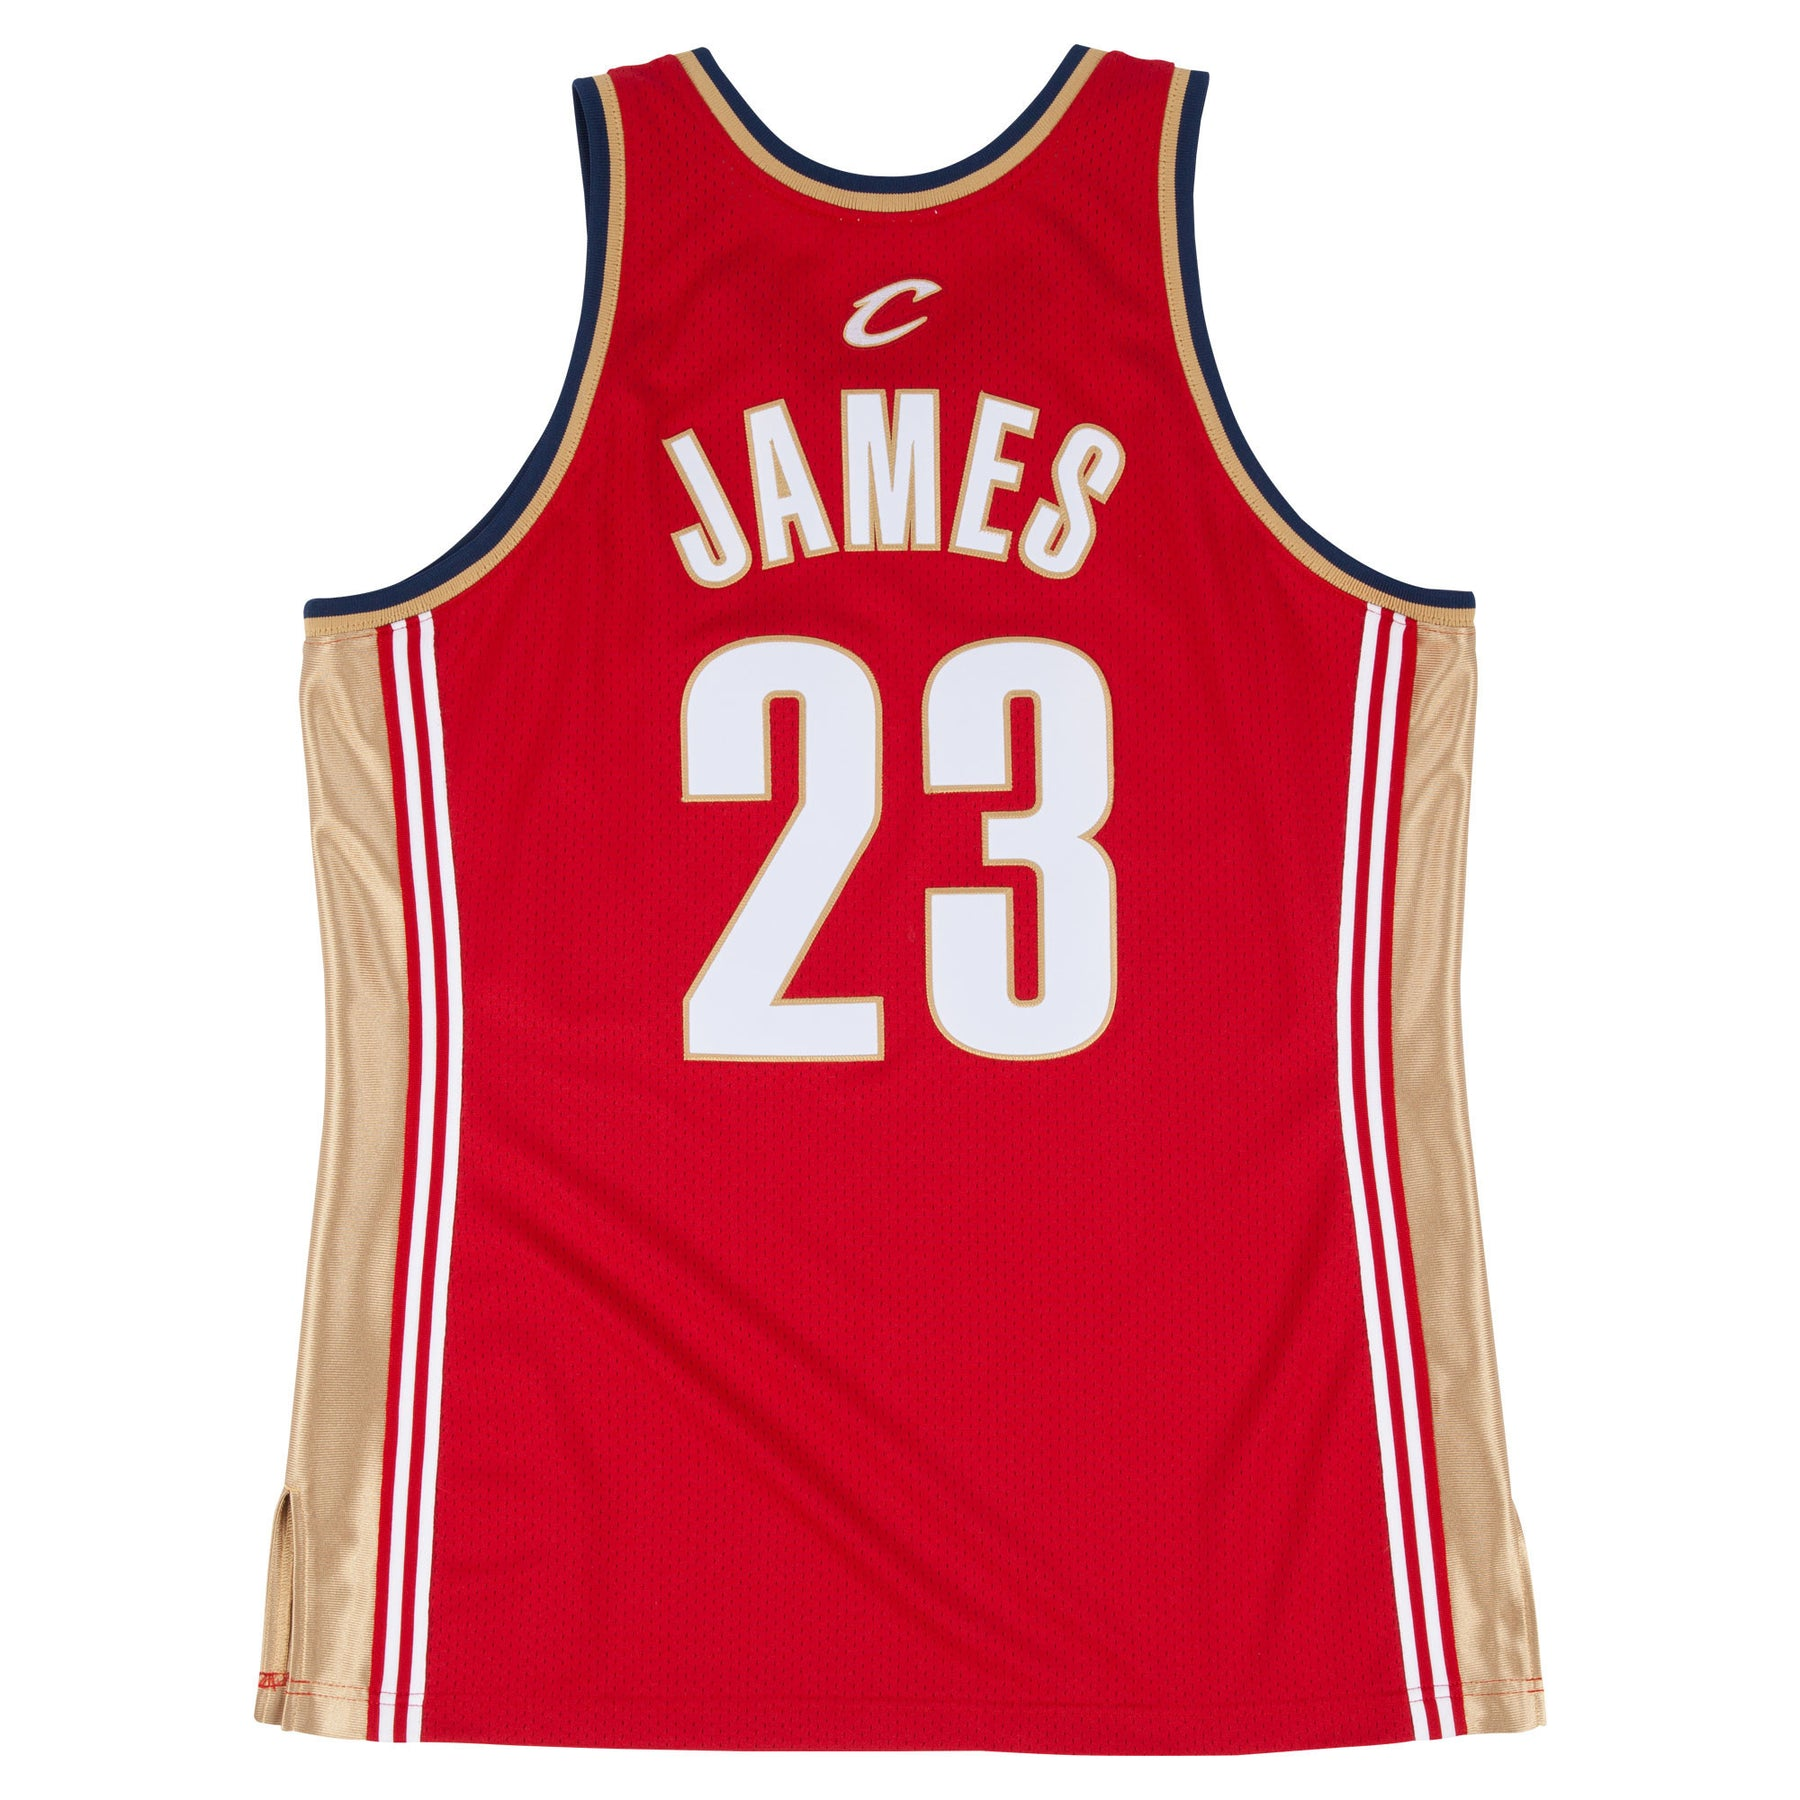 lebron throwback jersey. the · on back of cleveland cavaliers jersey james lettering is white and gold. vintage throwback #23 lebron e